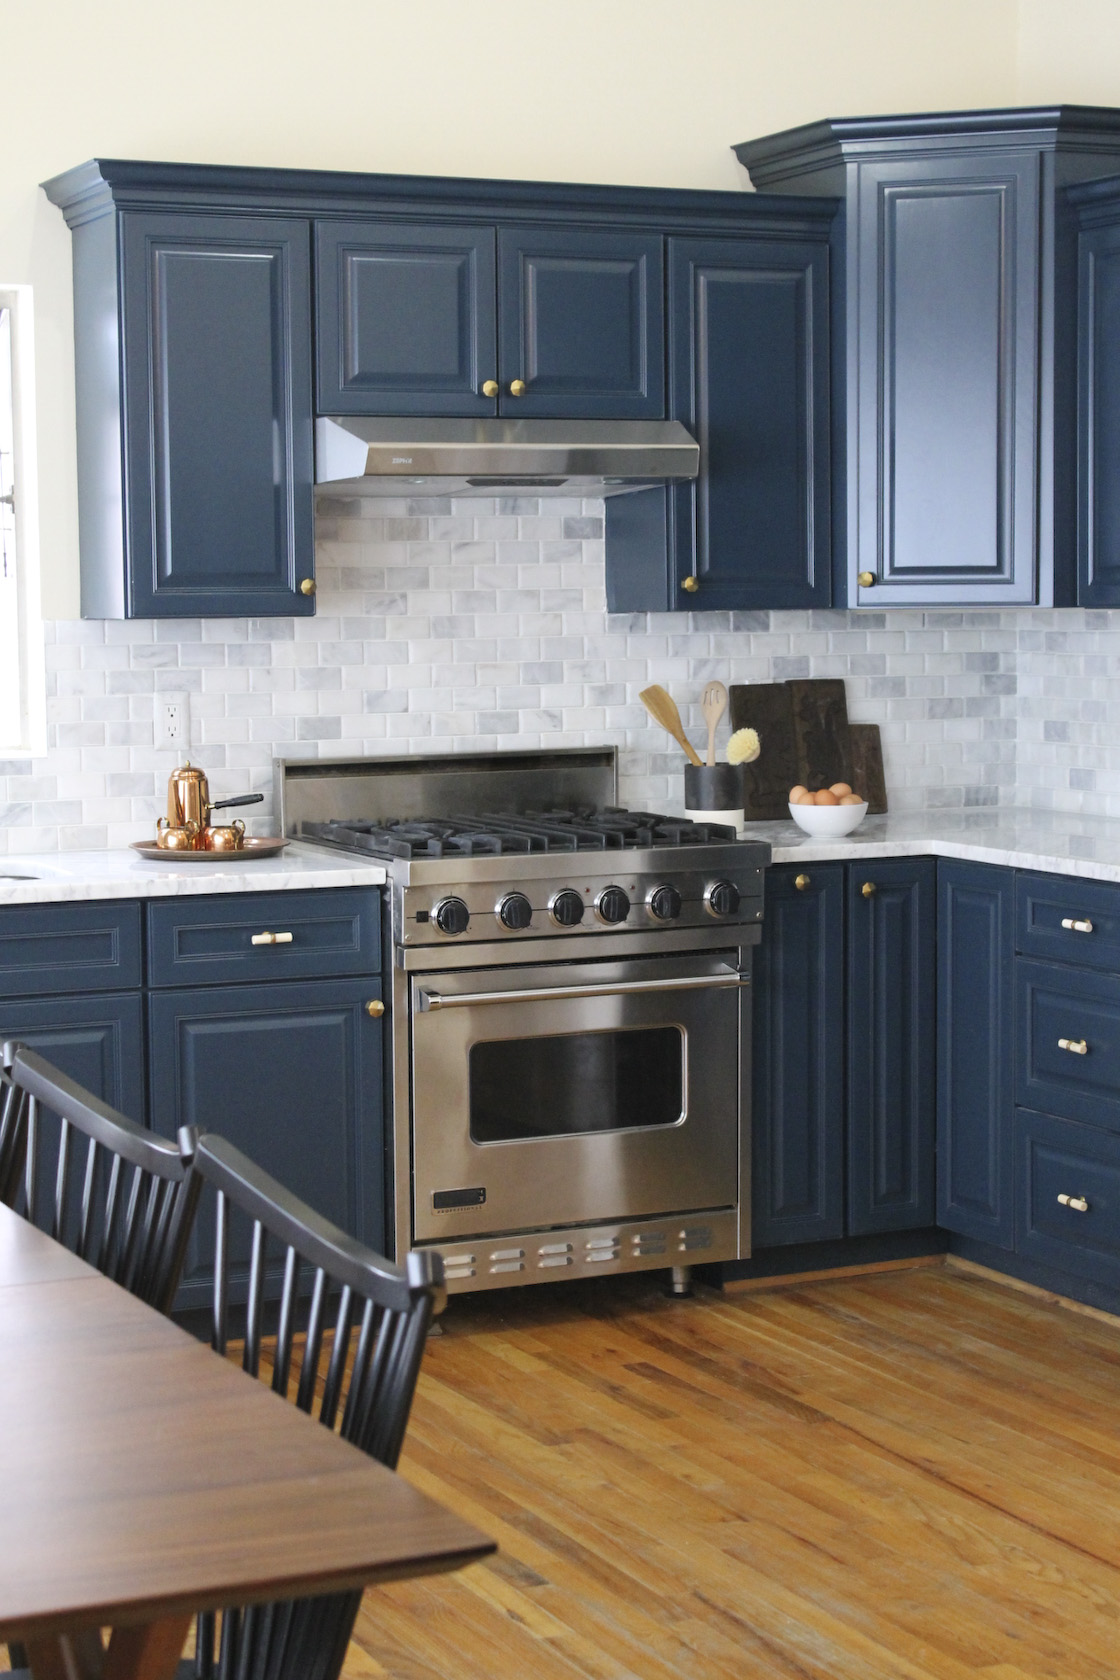 restore kitchen cabinets island tops ideas cabinet restoration company on hgtvs cousins undercover